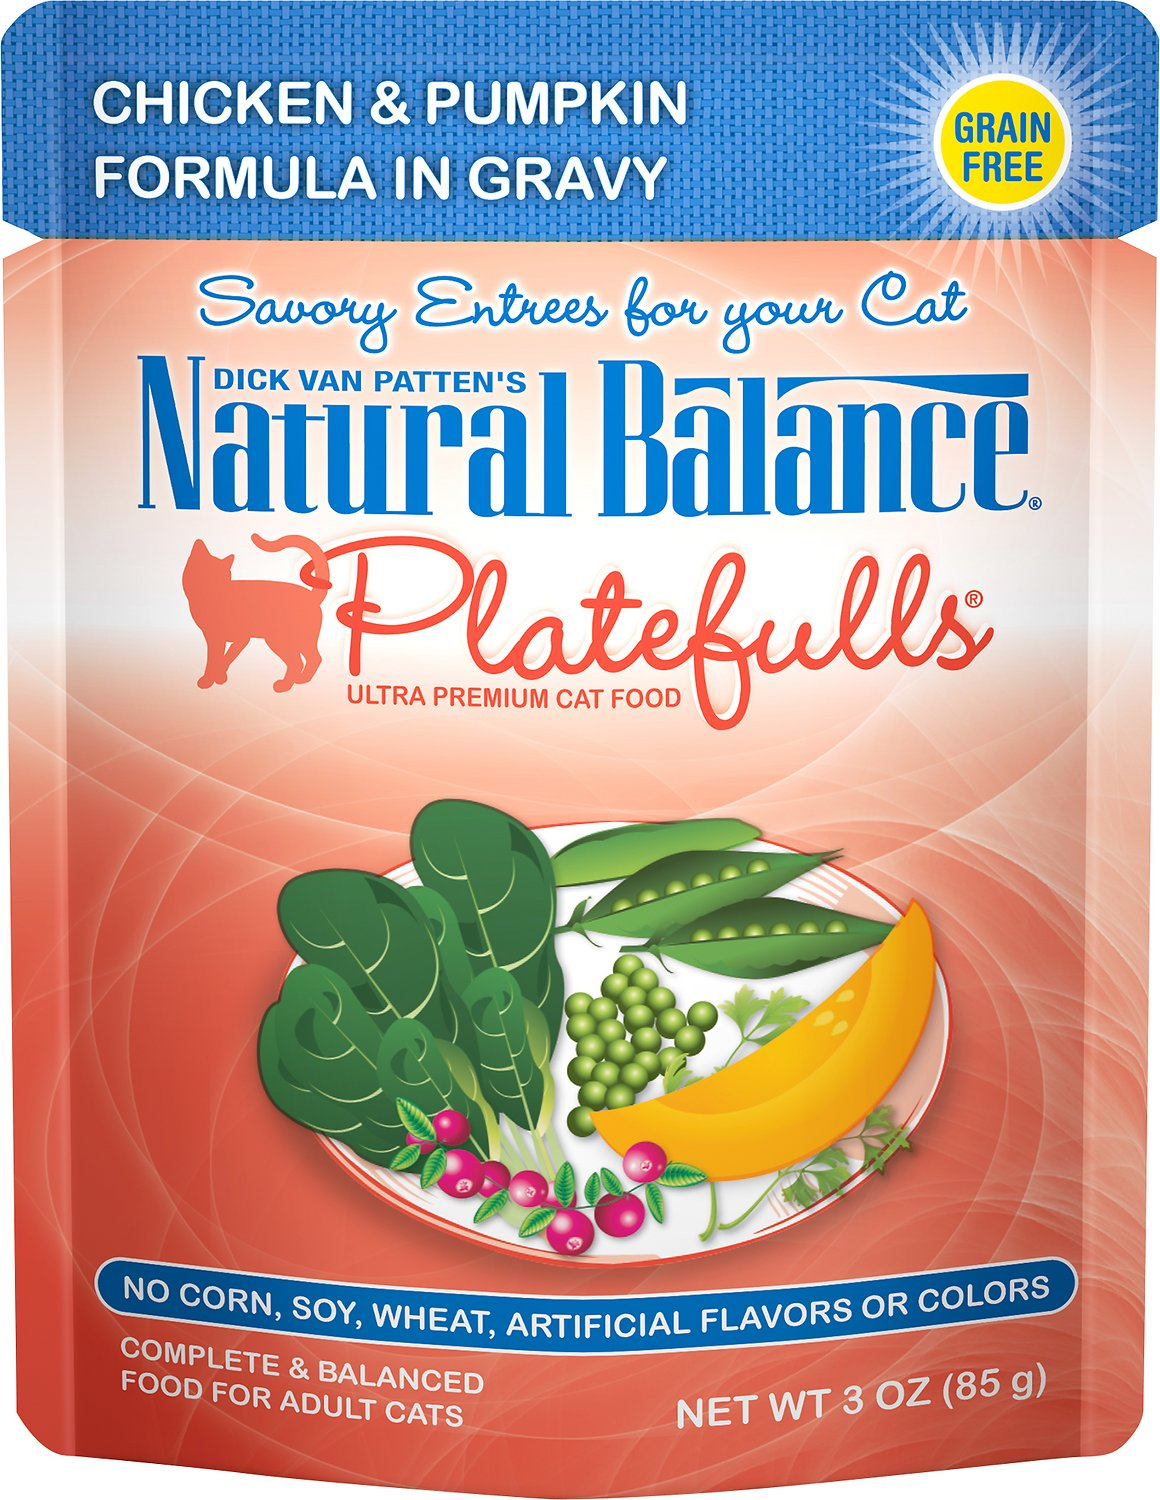 Natural Balance Platefulls Chicken & Pumpkin Formula in Gravy Grain-Free Cat Food Pouches, 3-oz pouch